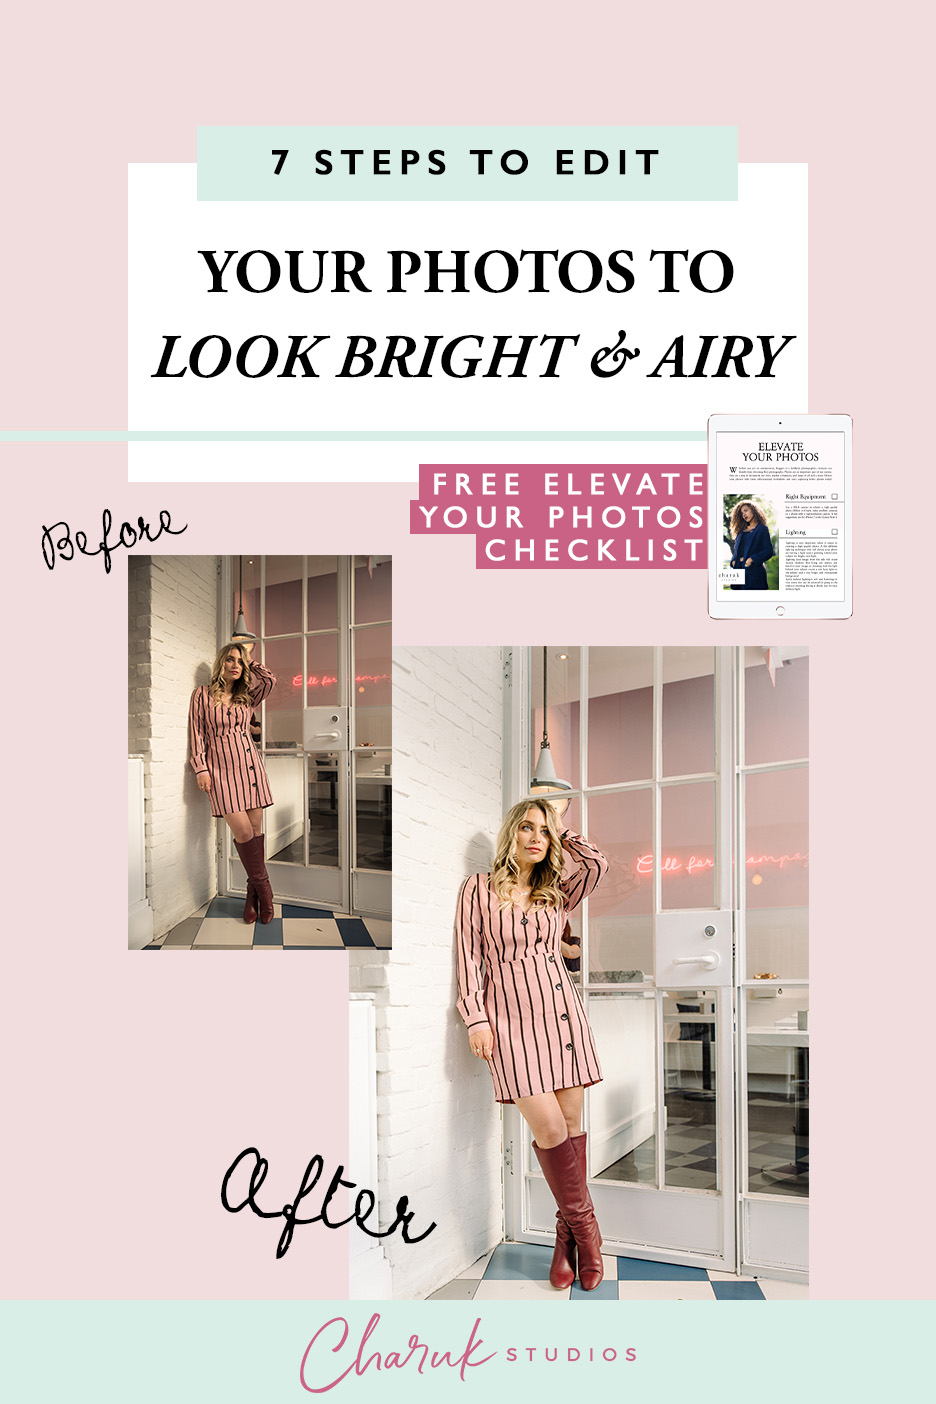 7 Steps to Edit Your Photos to Look Bright & Airy by Charuk Studios